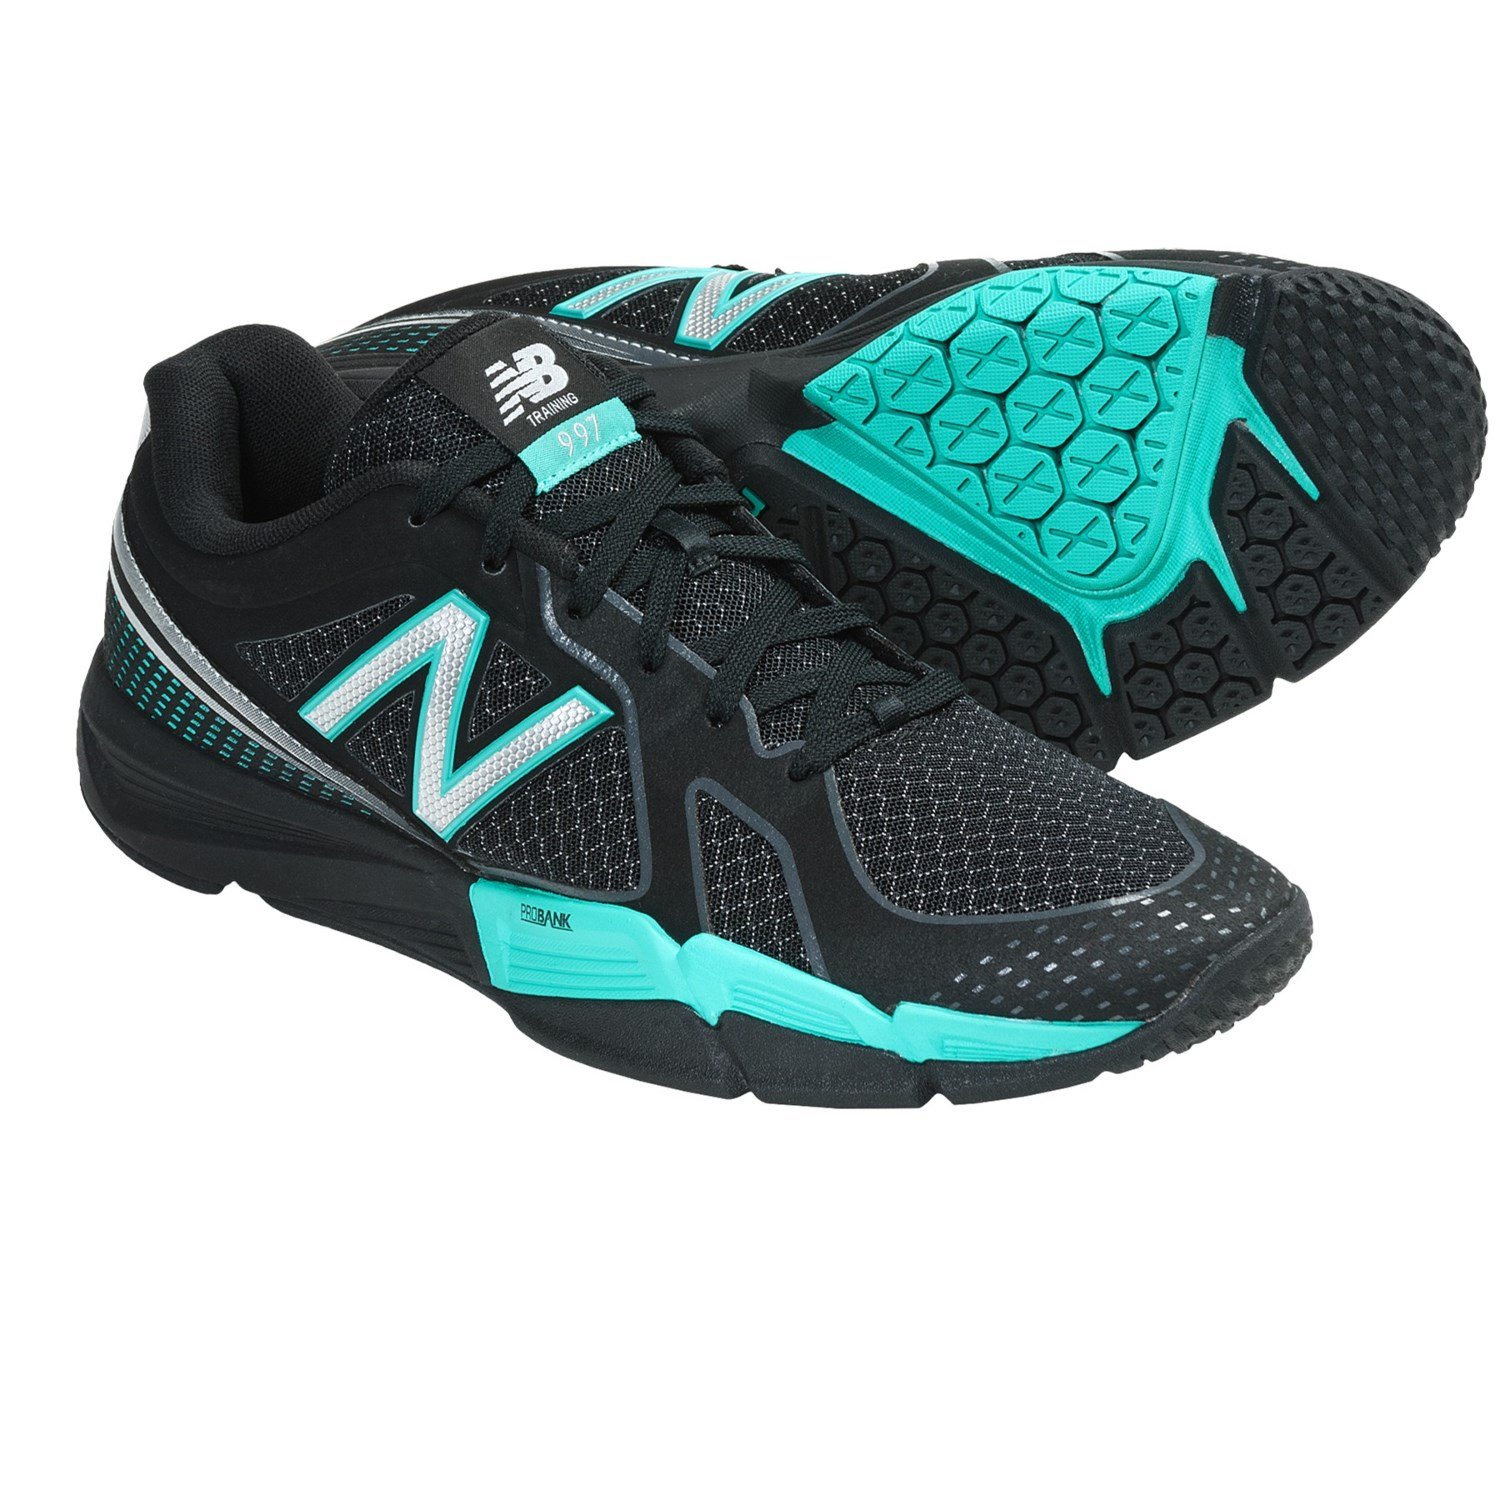 New Balance WX997 Cross Training Shoes (For Women) in Black/Teal